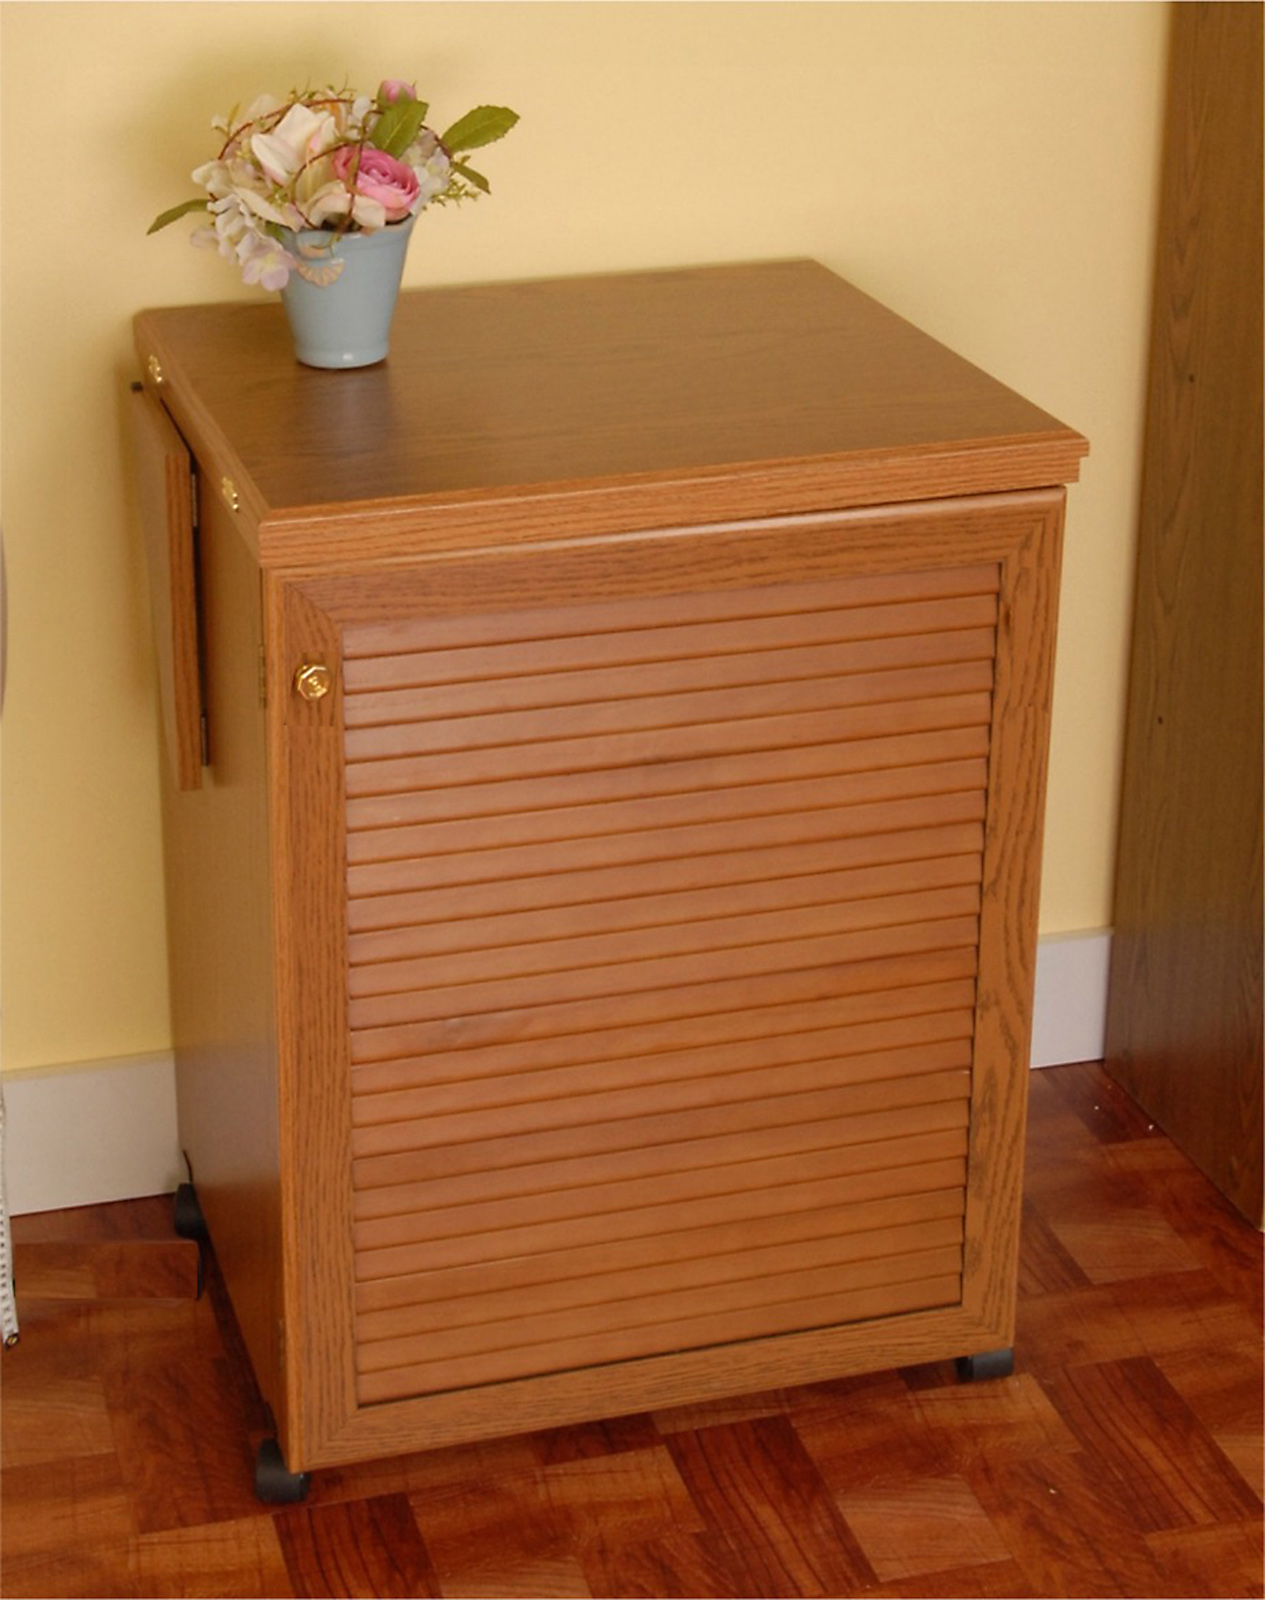 Arrow Sewing Cabinet w/ EZ-Lift Air Mechanism - Oak Grain